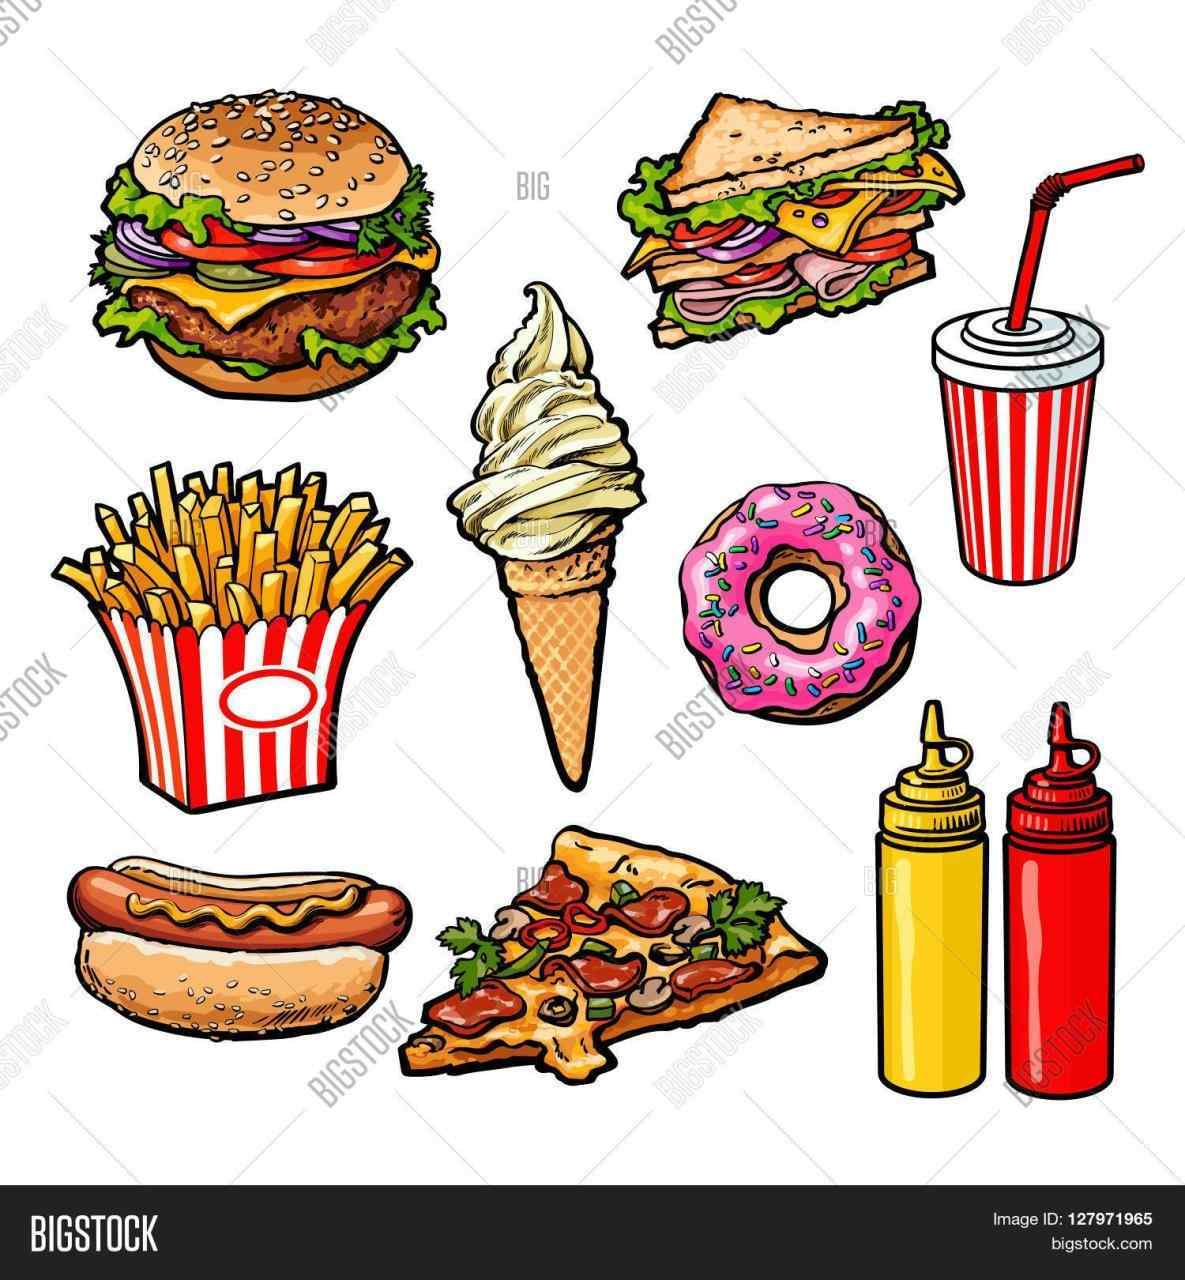 1185x1280 Unhealthy food drawing foods posters worksheets and activities the